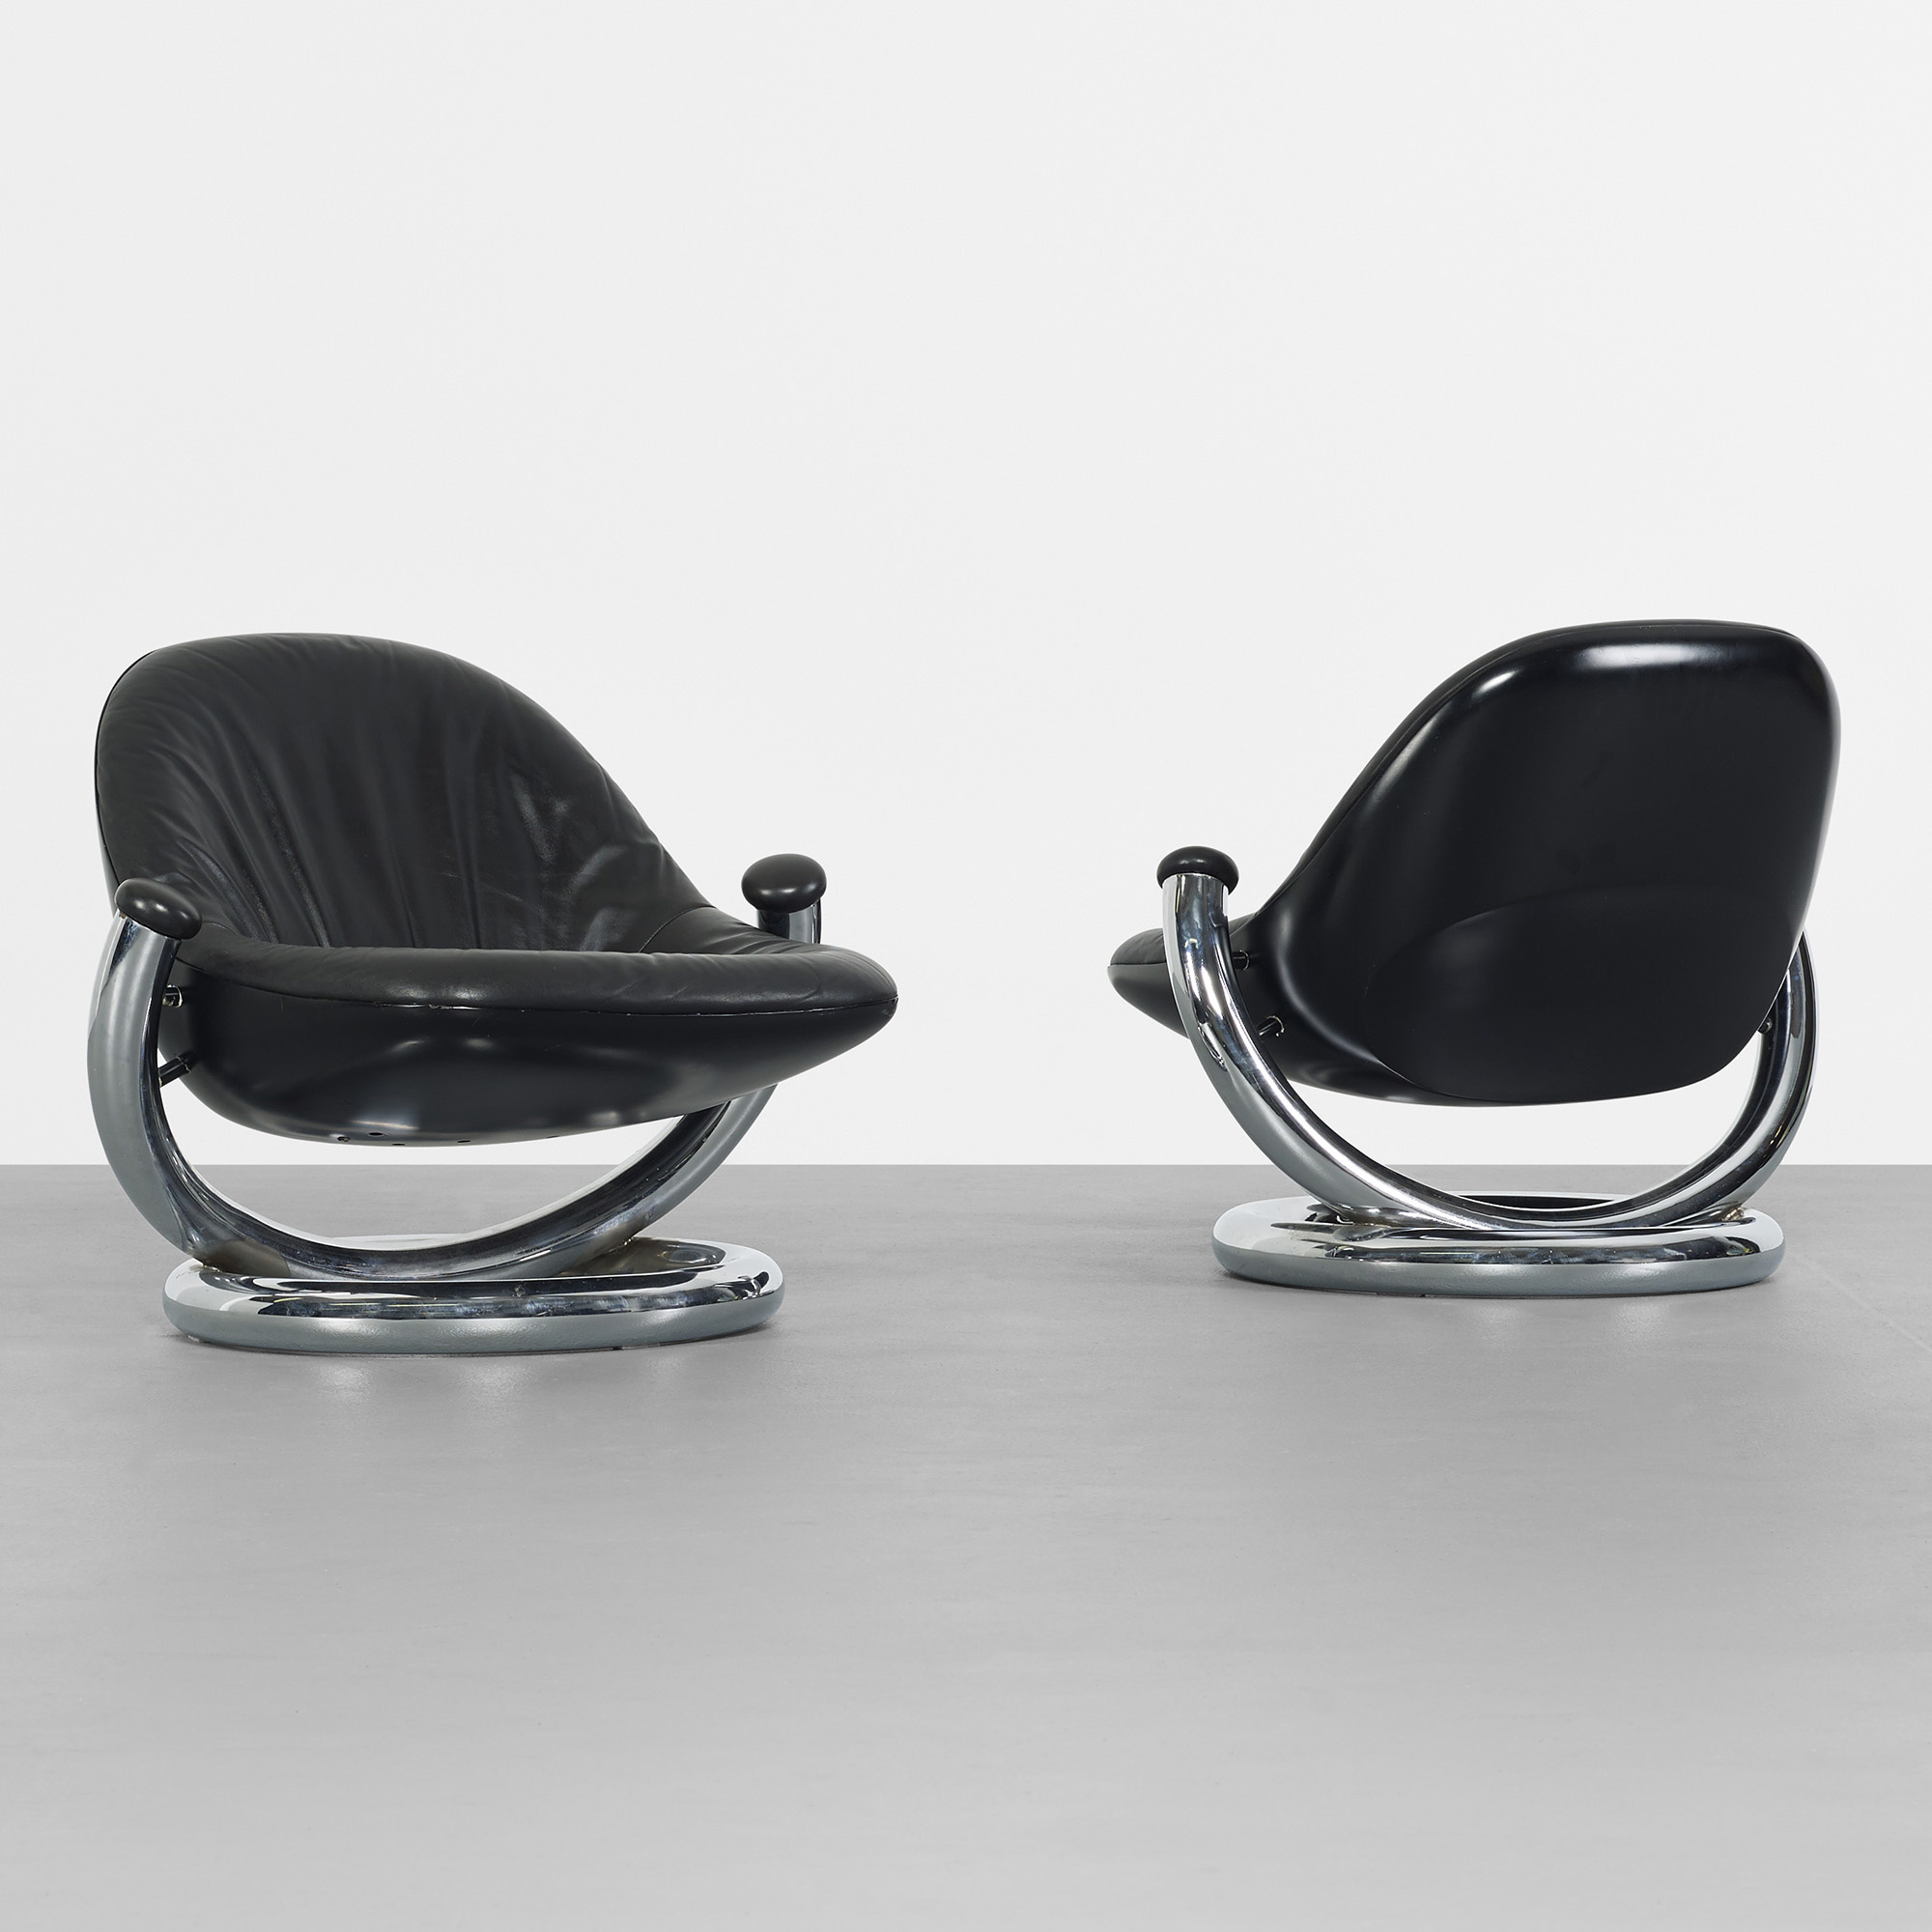 Etonnant 390: Paul Tuttle / Anaconda Lounge Chairs, Pair (1 Of 2)